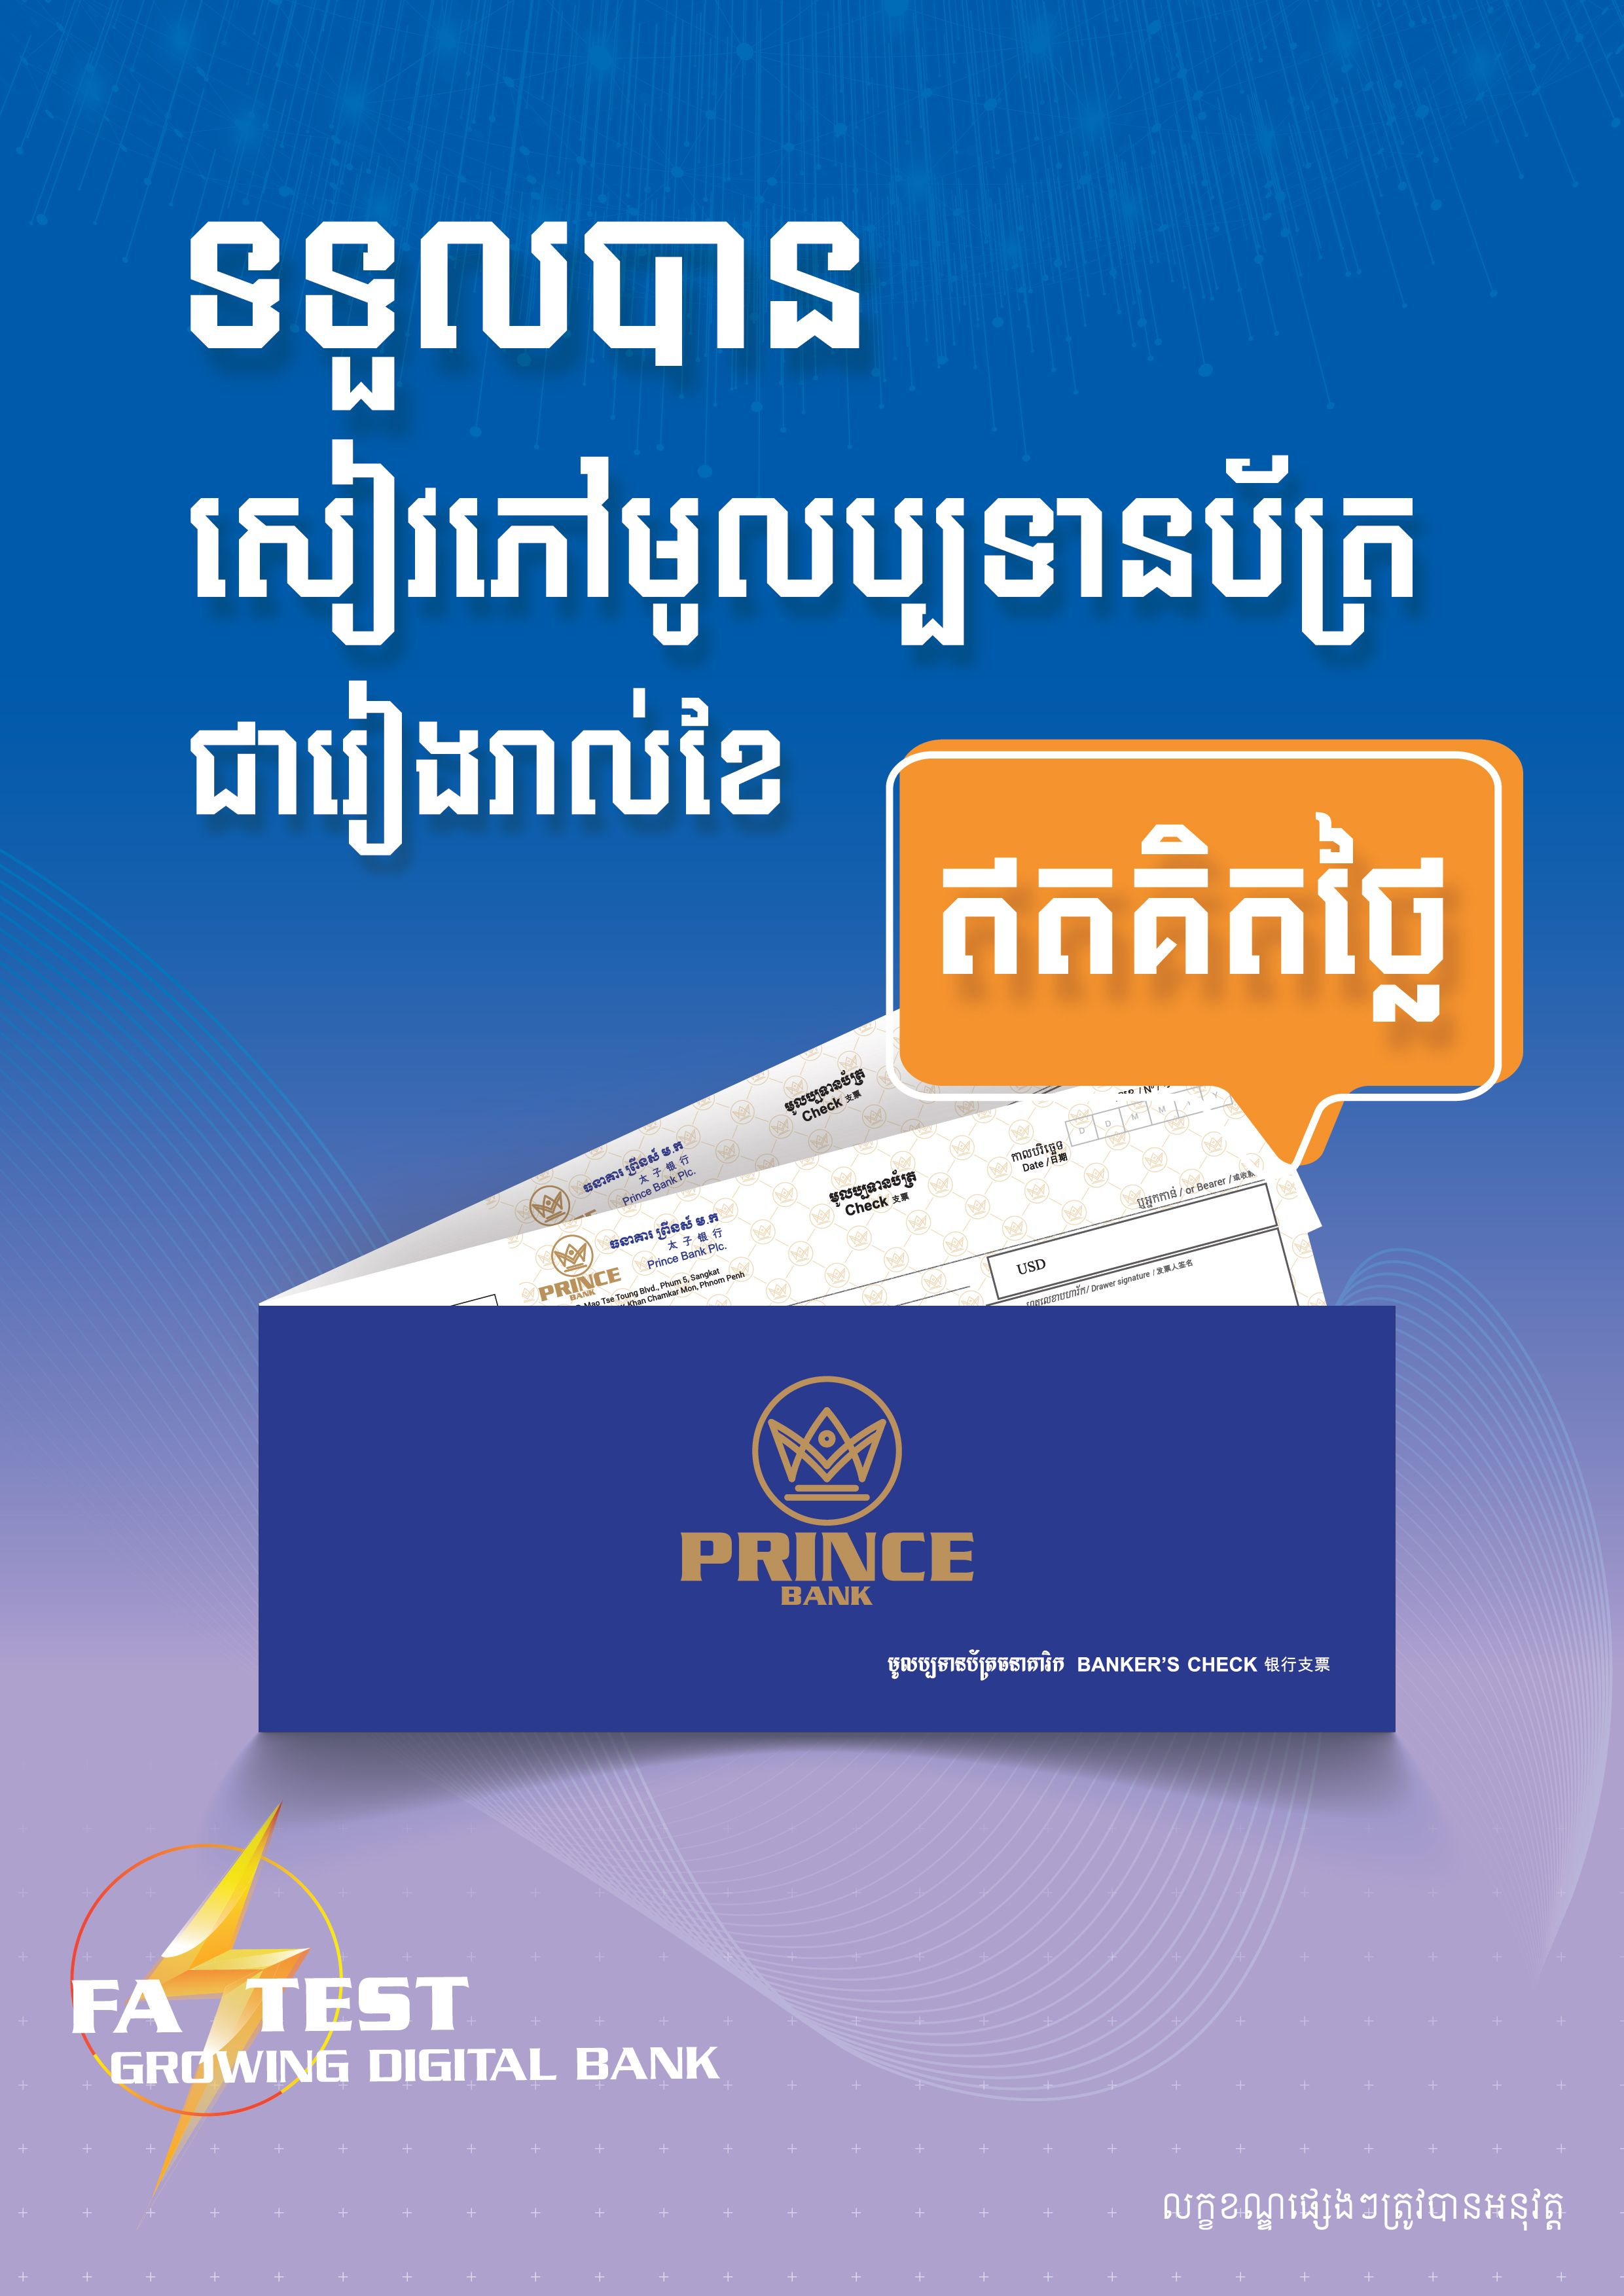 Prince Bank's Current Account, receive a free che